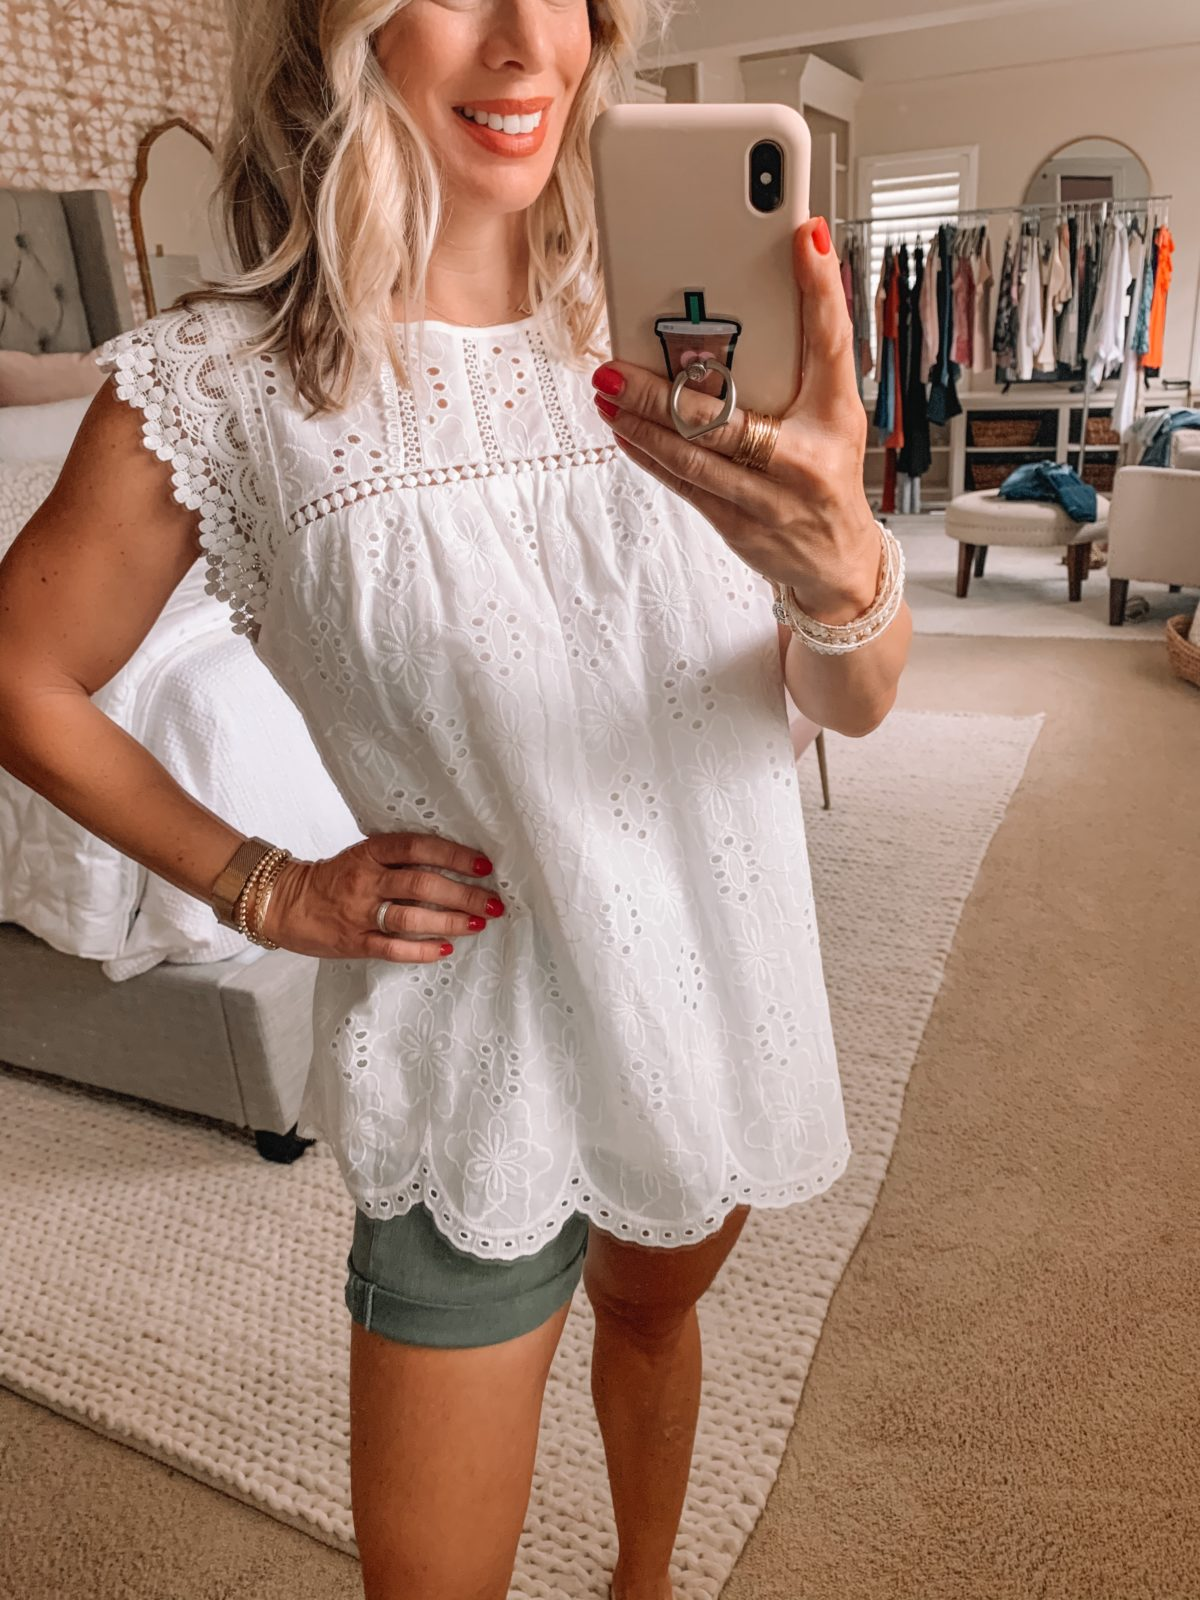 Dressing Room Finds Nordstrom and Target, Eyelet Top, Olive Denim Shorts